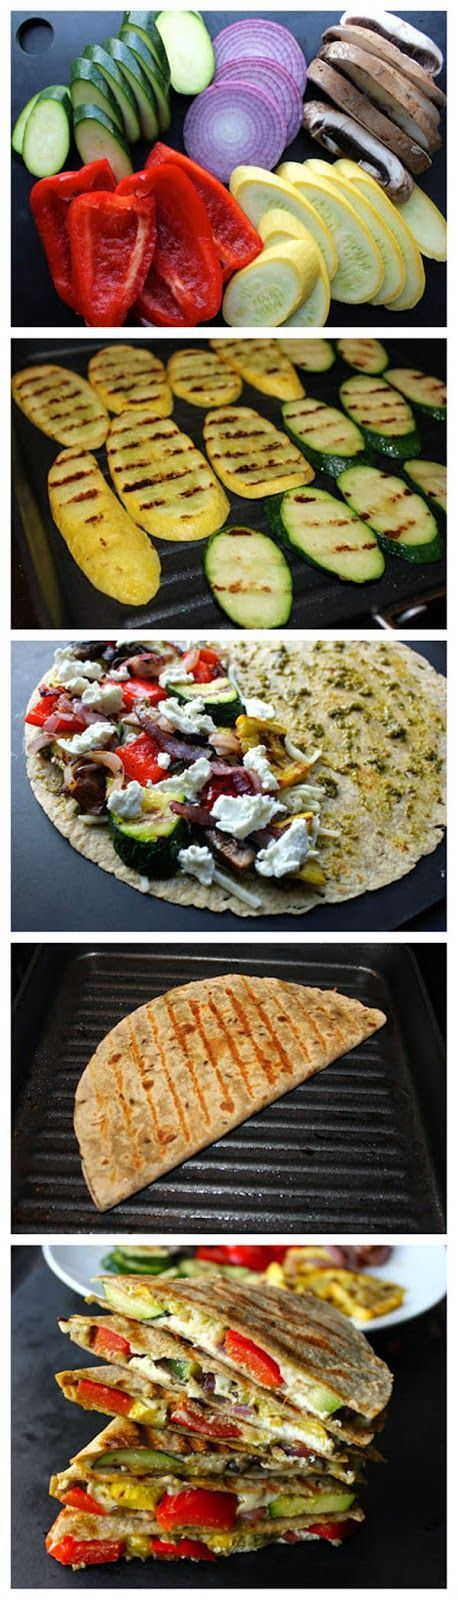 grilled veggies goat cheese pesto goats grilled vegetables veggies ...